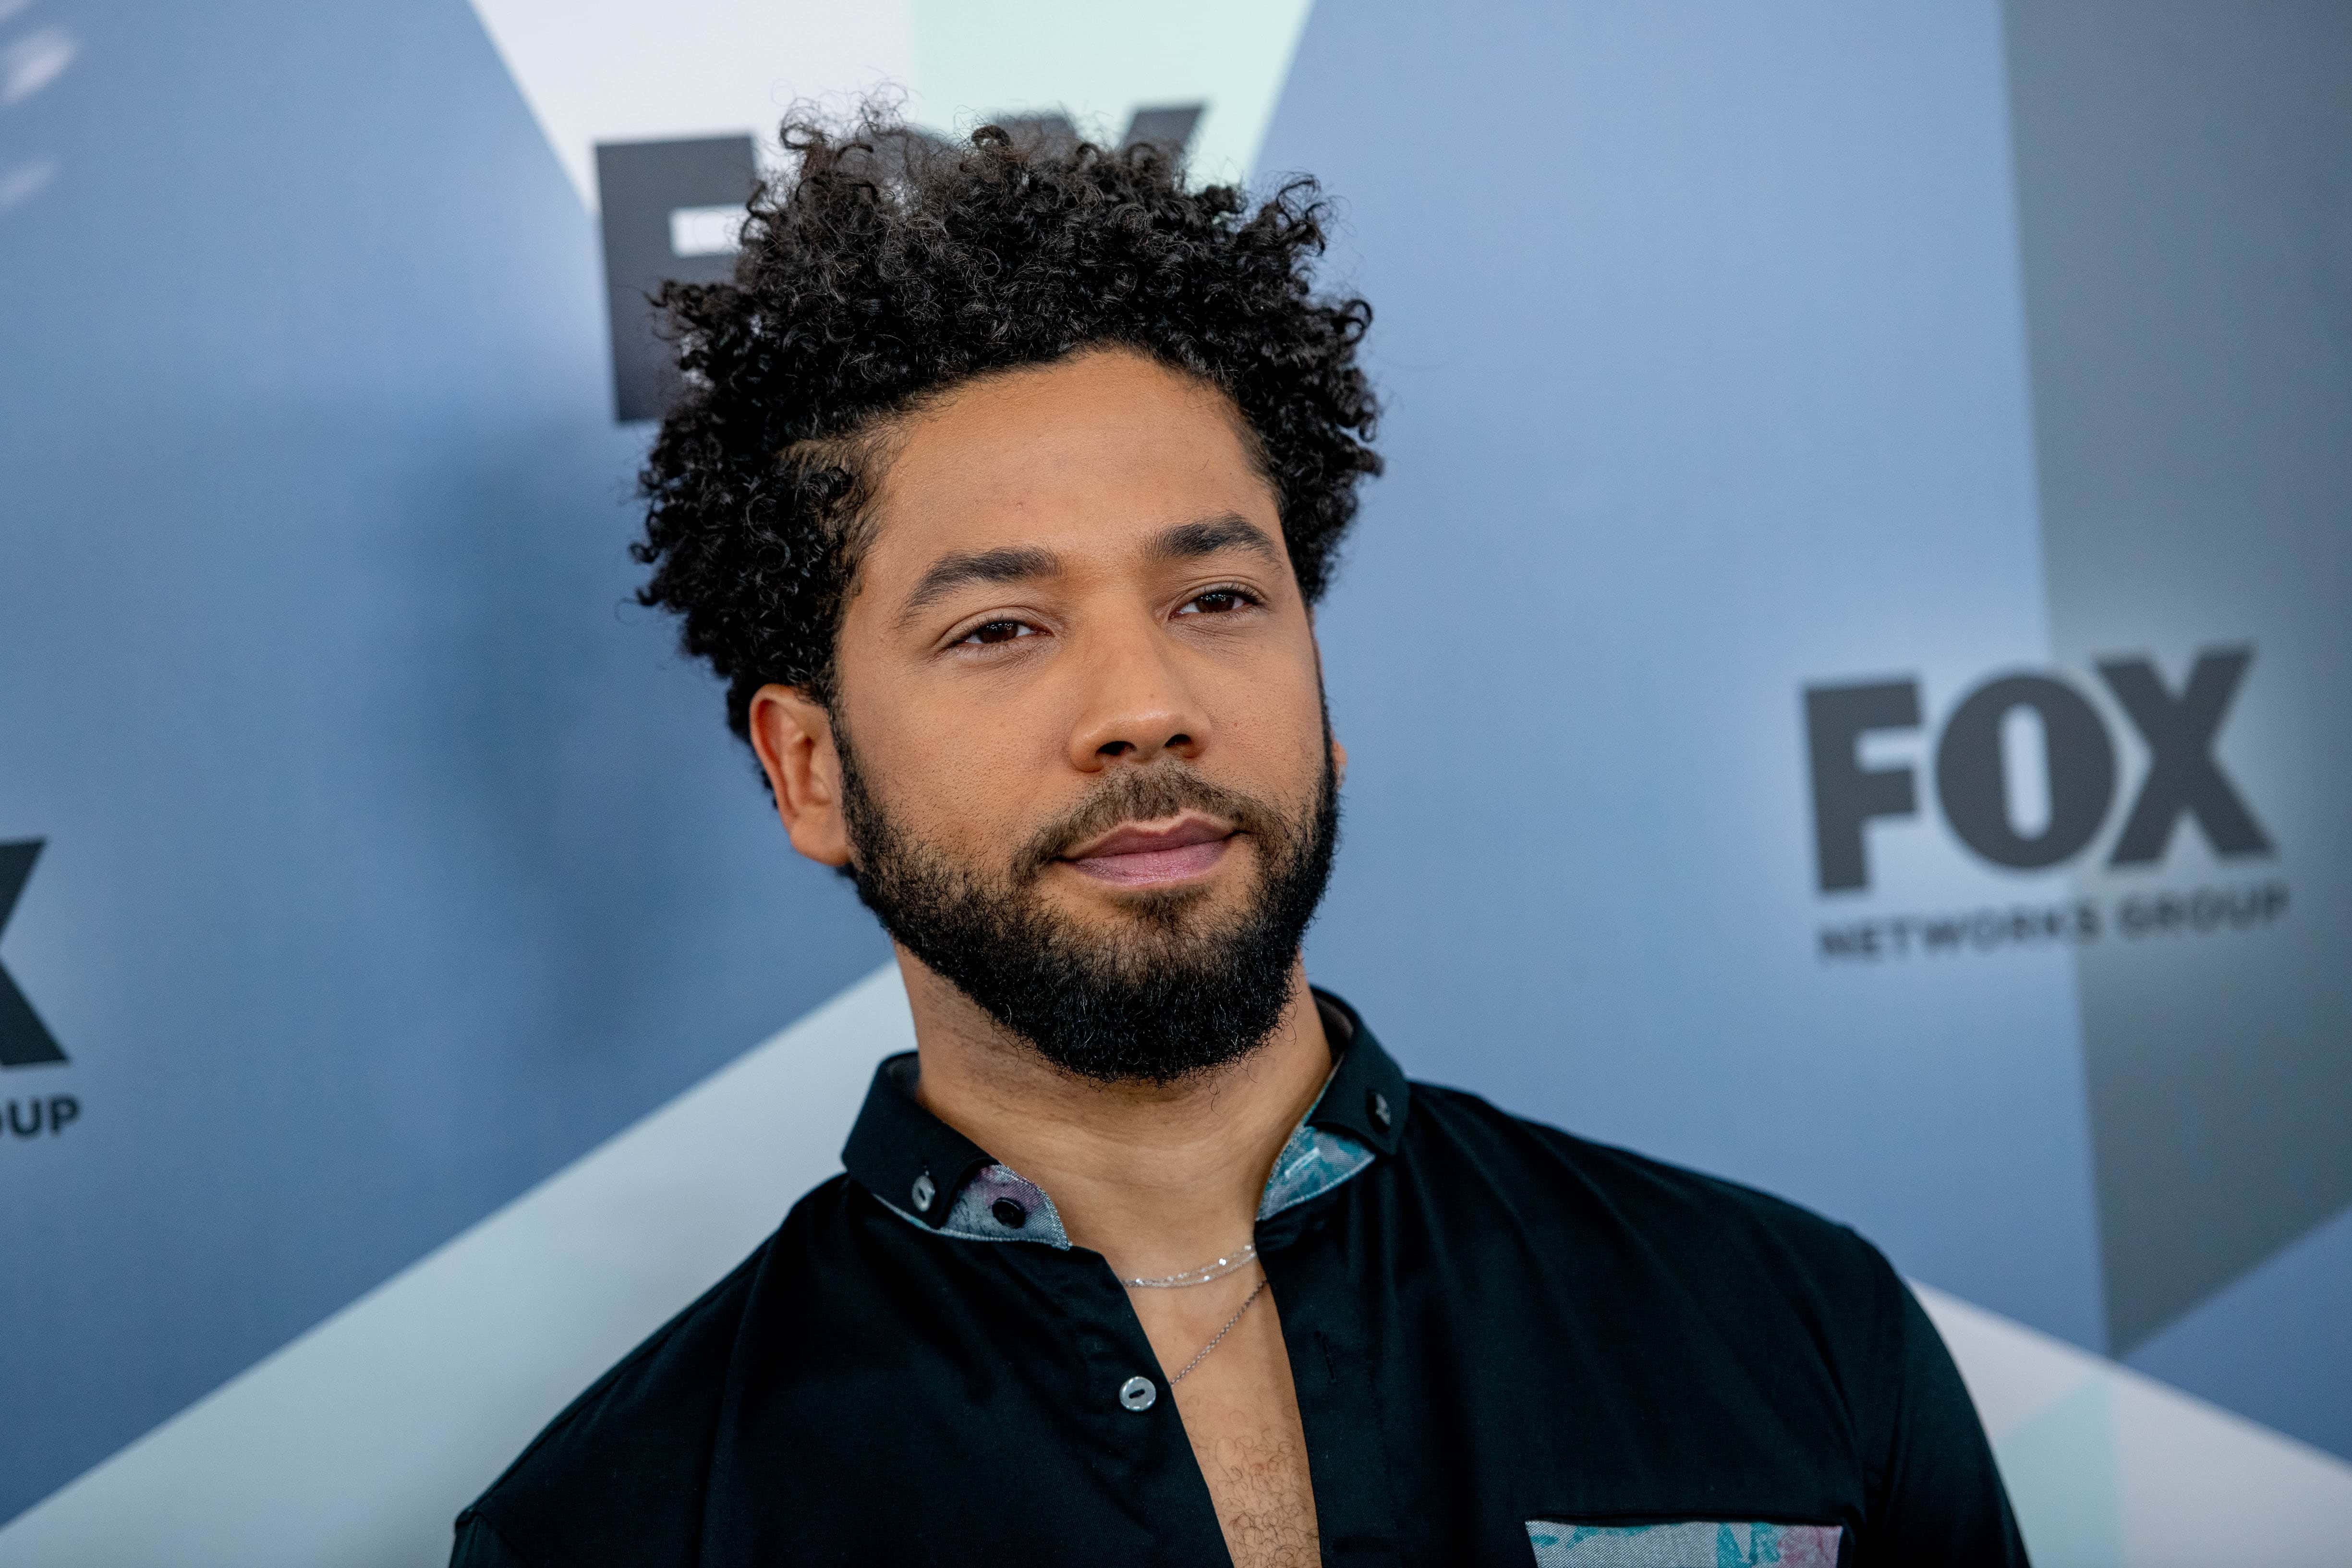 Even though 'Empire' actor Jussie Smollett was found innocent in the court of law, he's still definitely guilty in the court of public opinion (Source: Roy Rochlin/Getty Images)